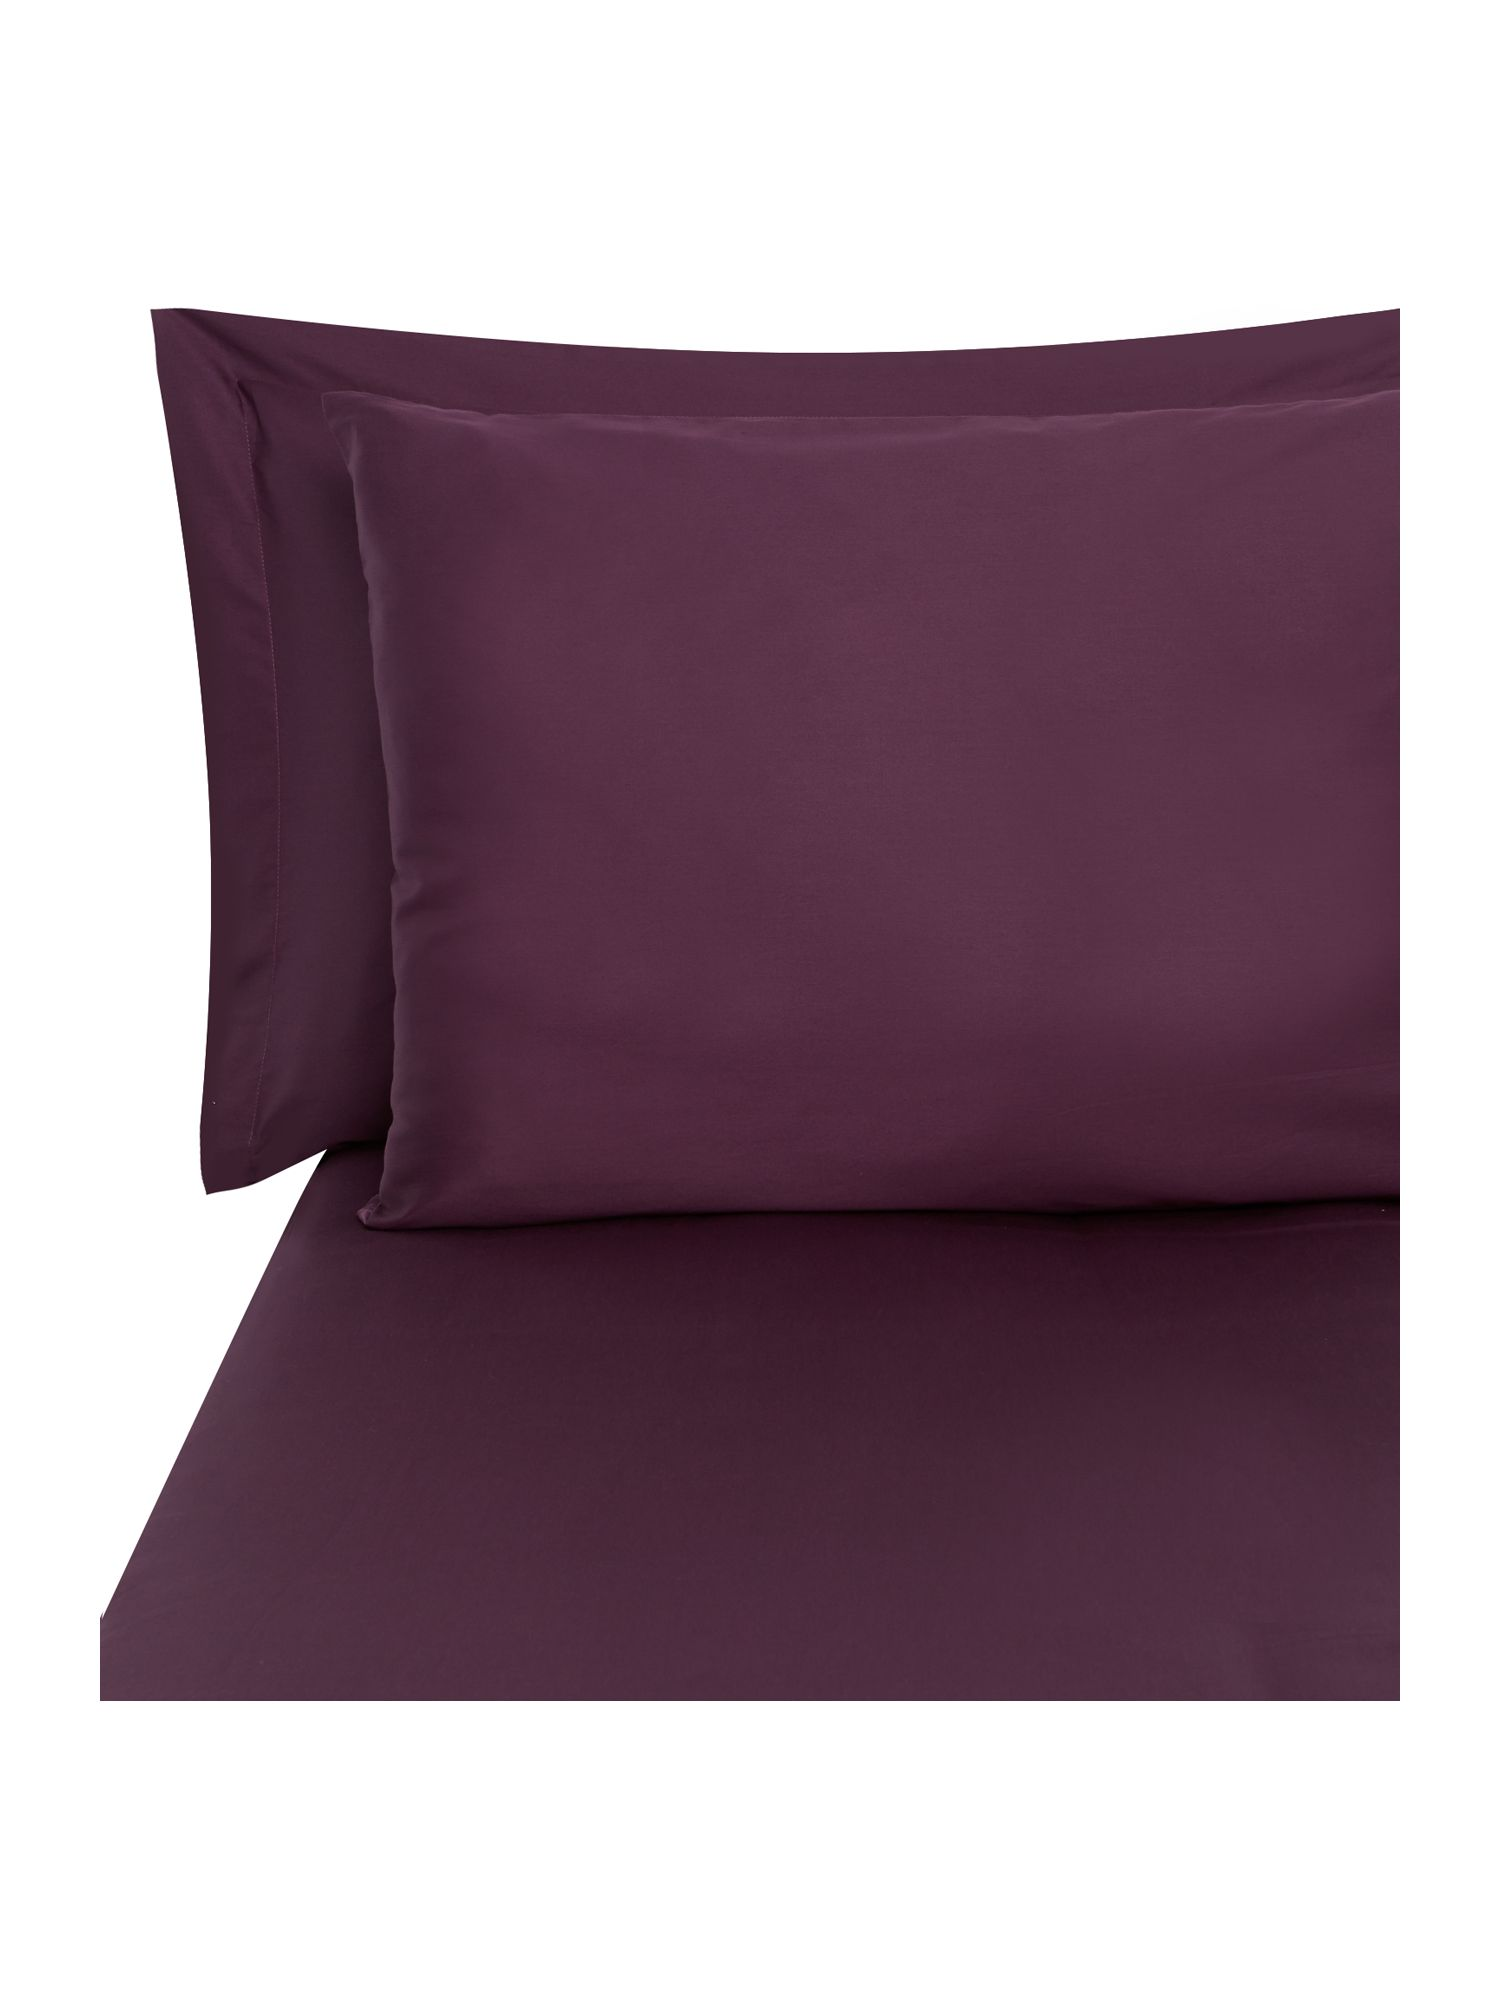 Amethyst oxford pillowcase pair